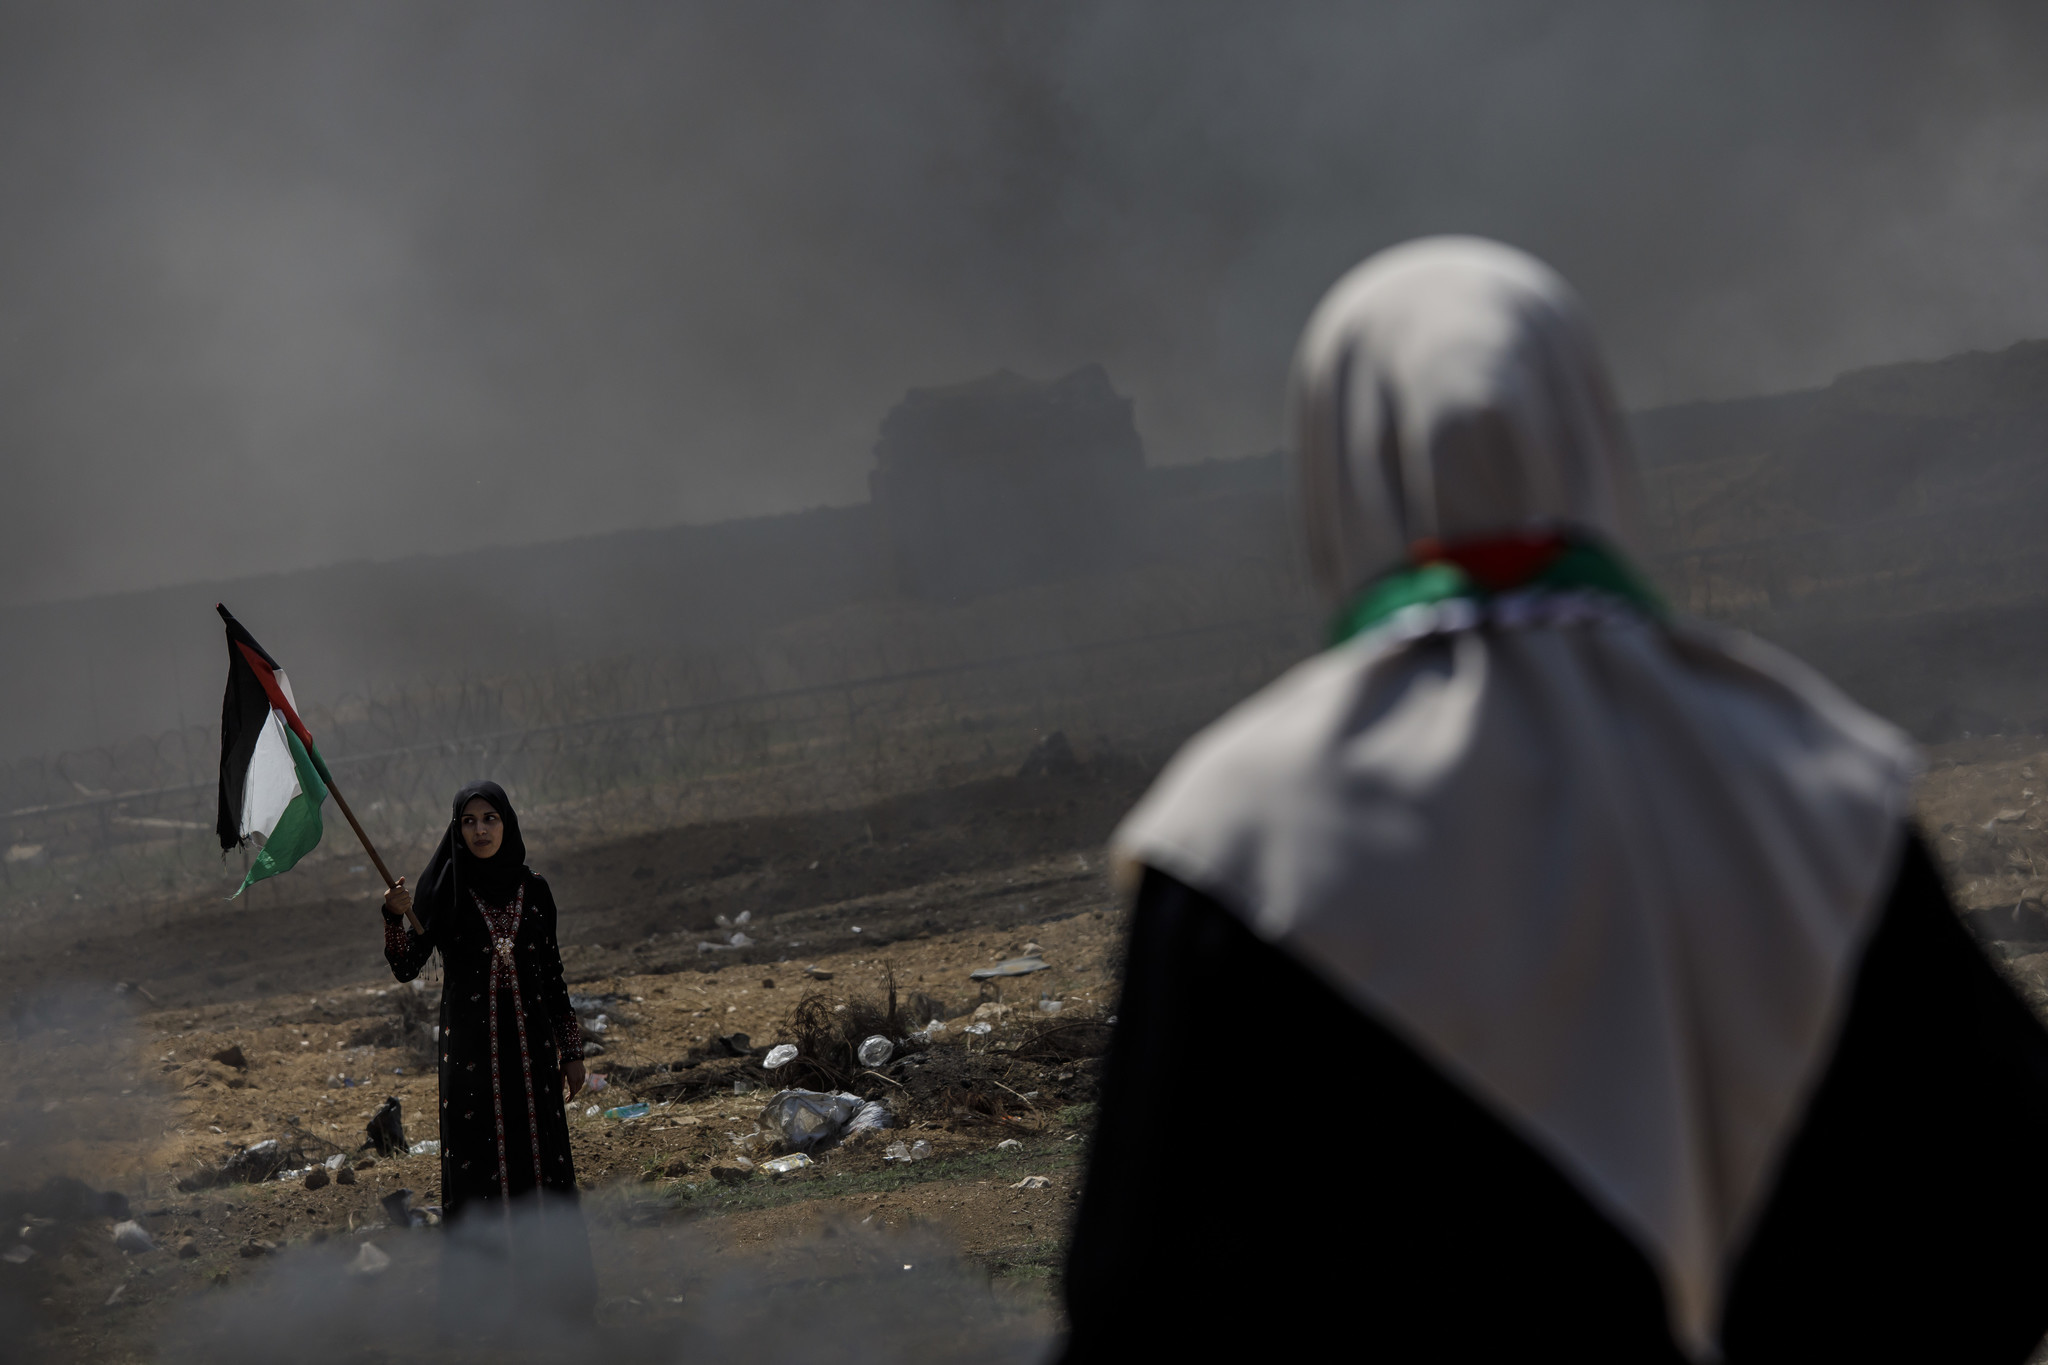 GAZA CITY, GAZA — SUNDAY, MAY 13, 2018: A Palestinian woman wanders the area close to the border fe